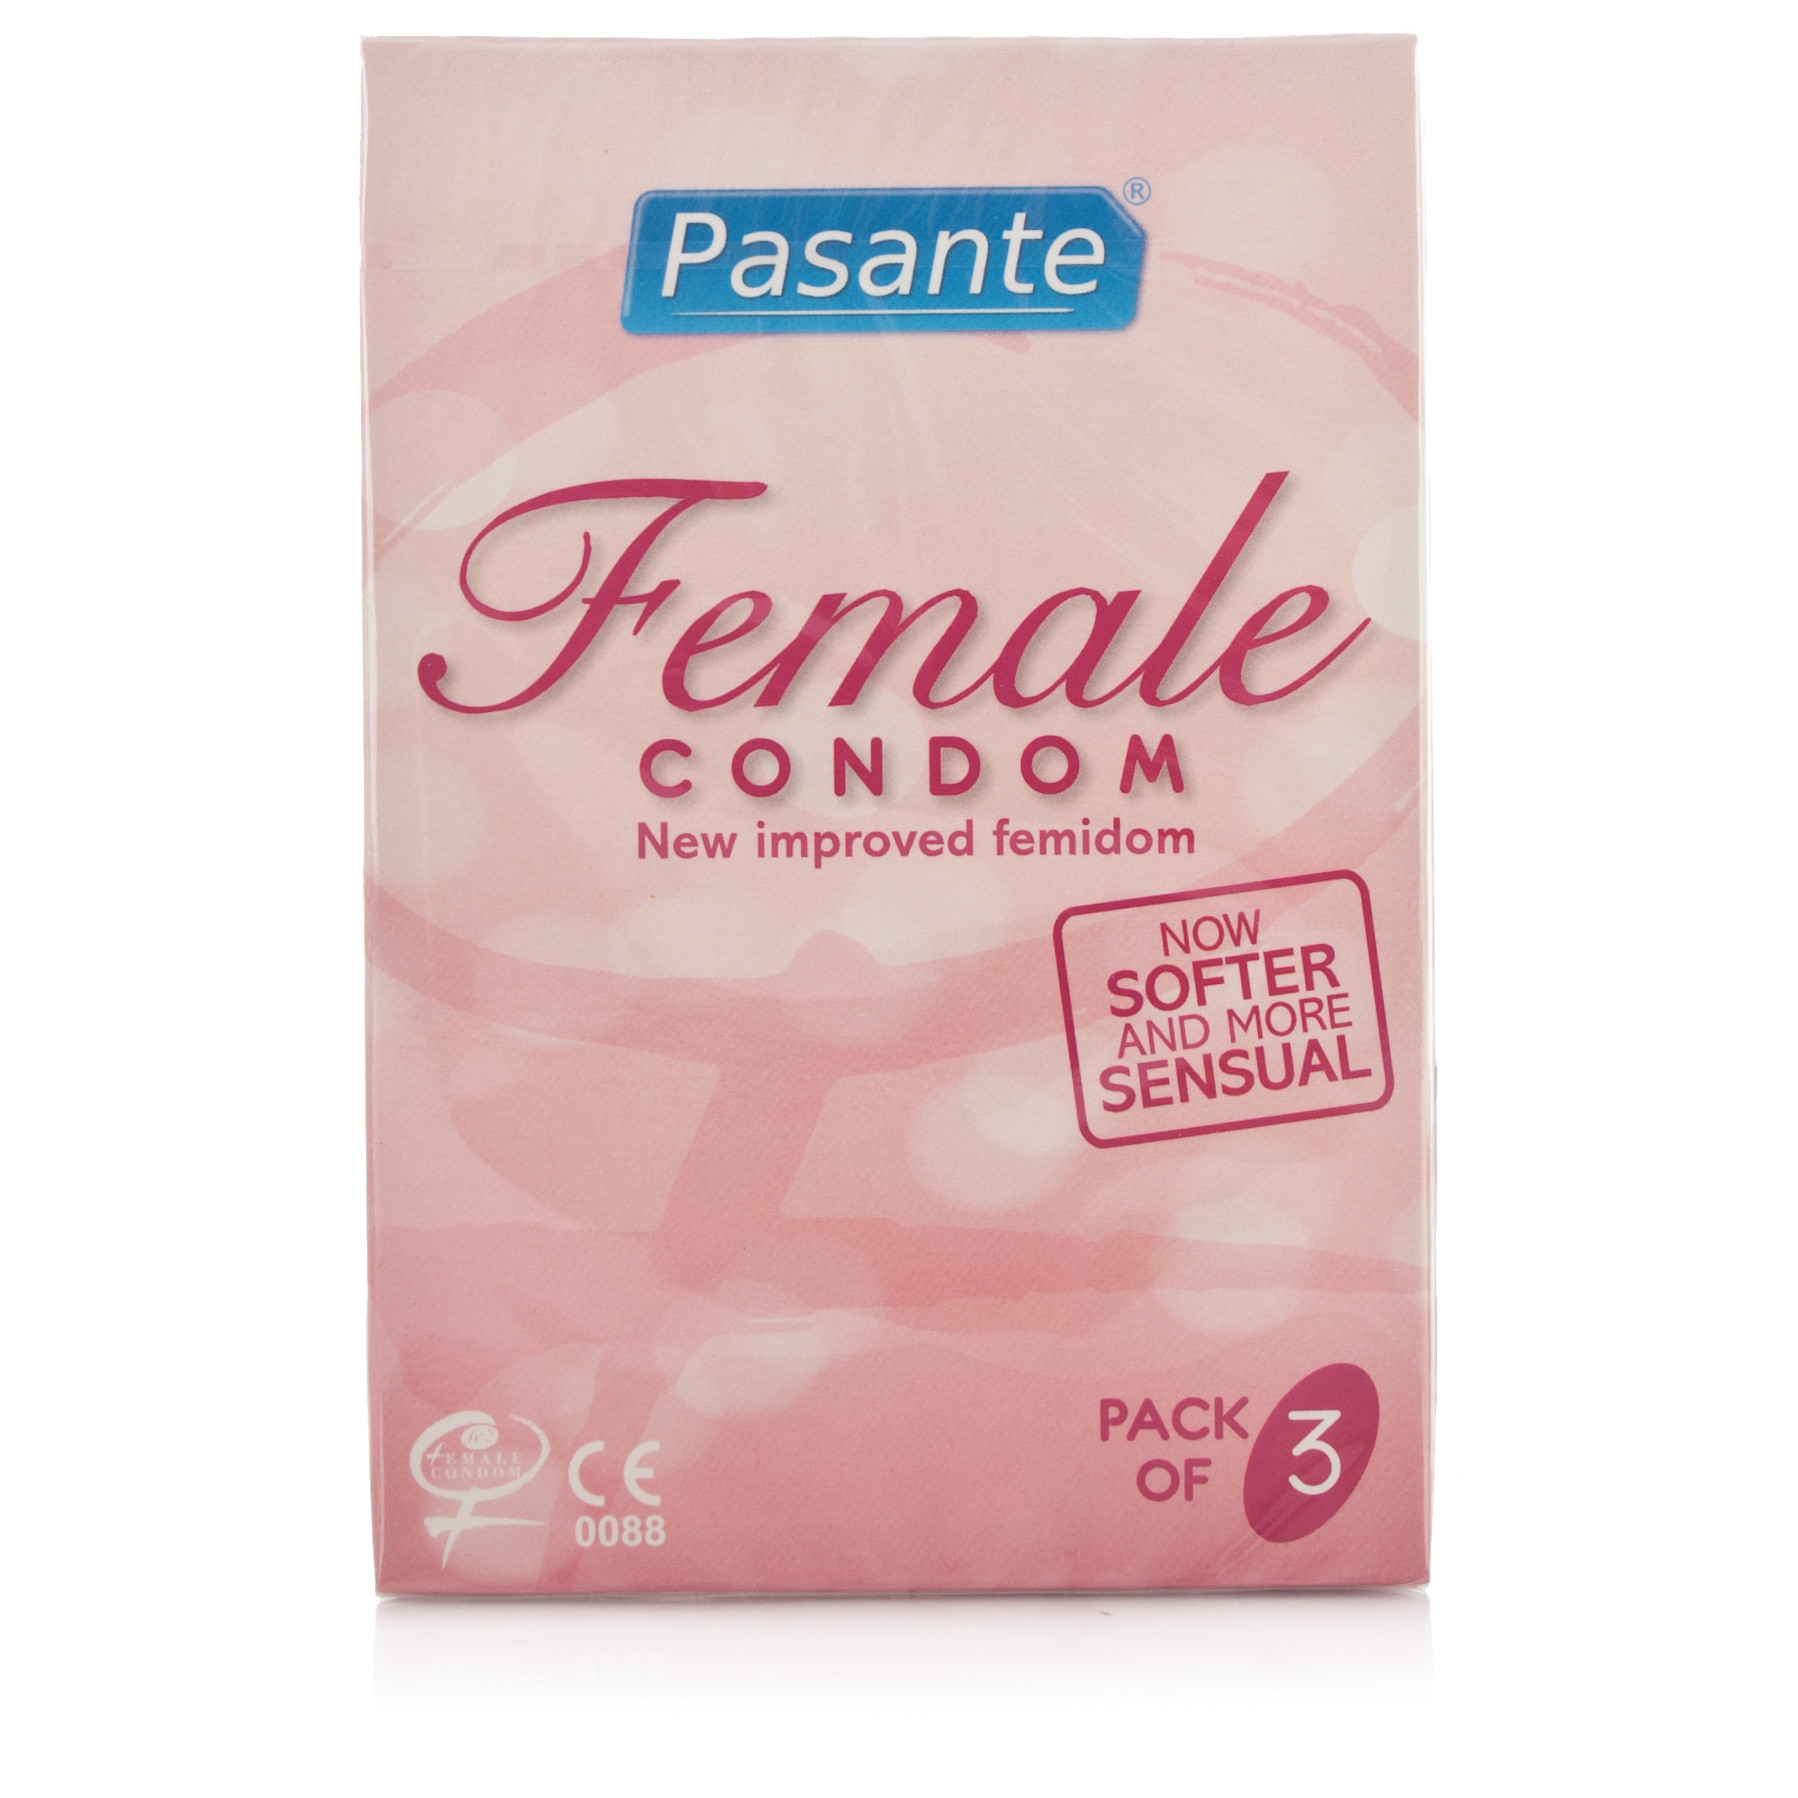 Pasante Female Condom